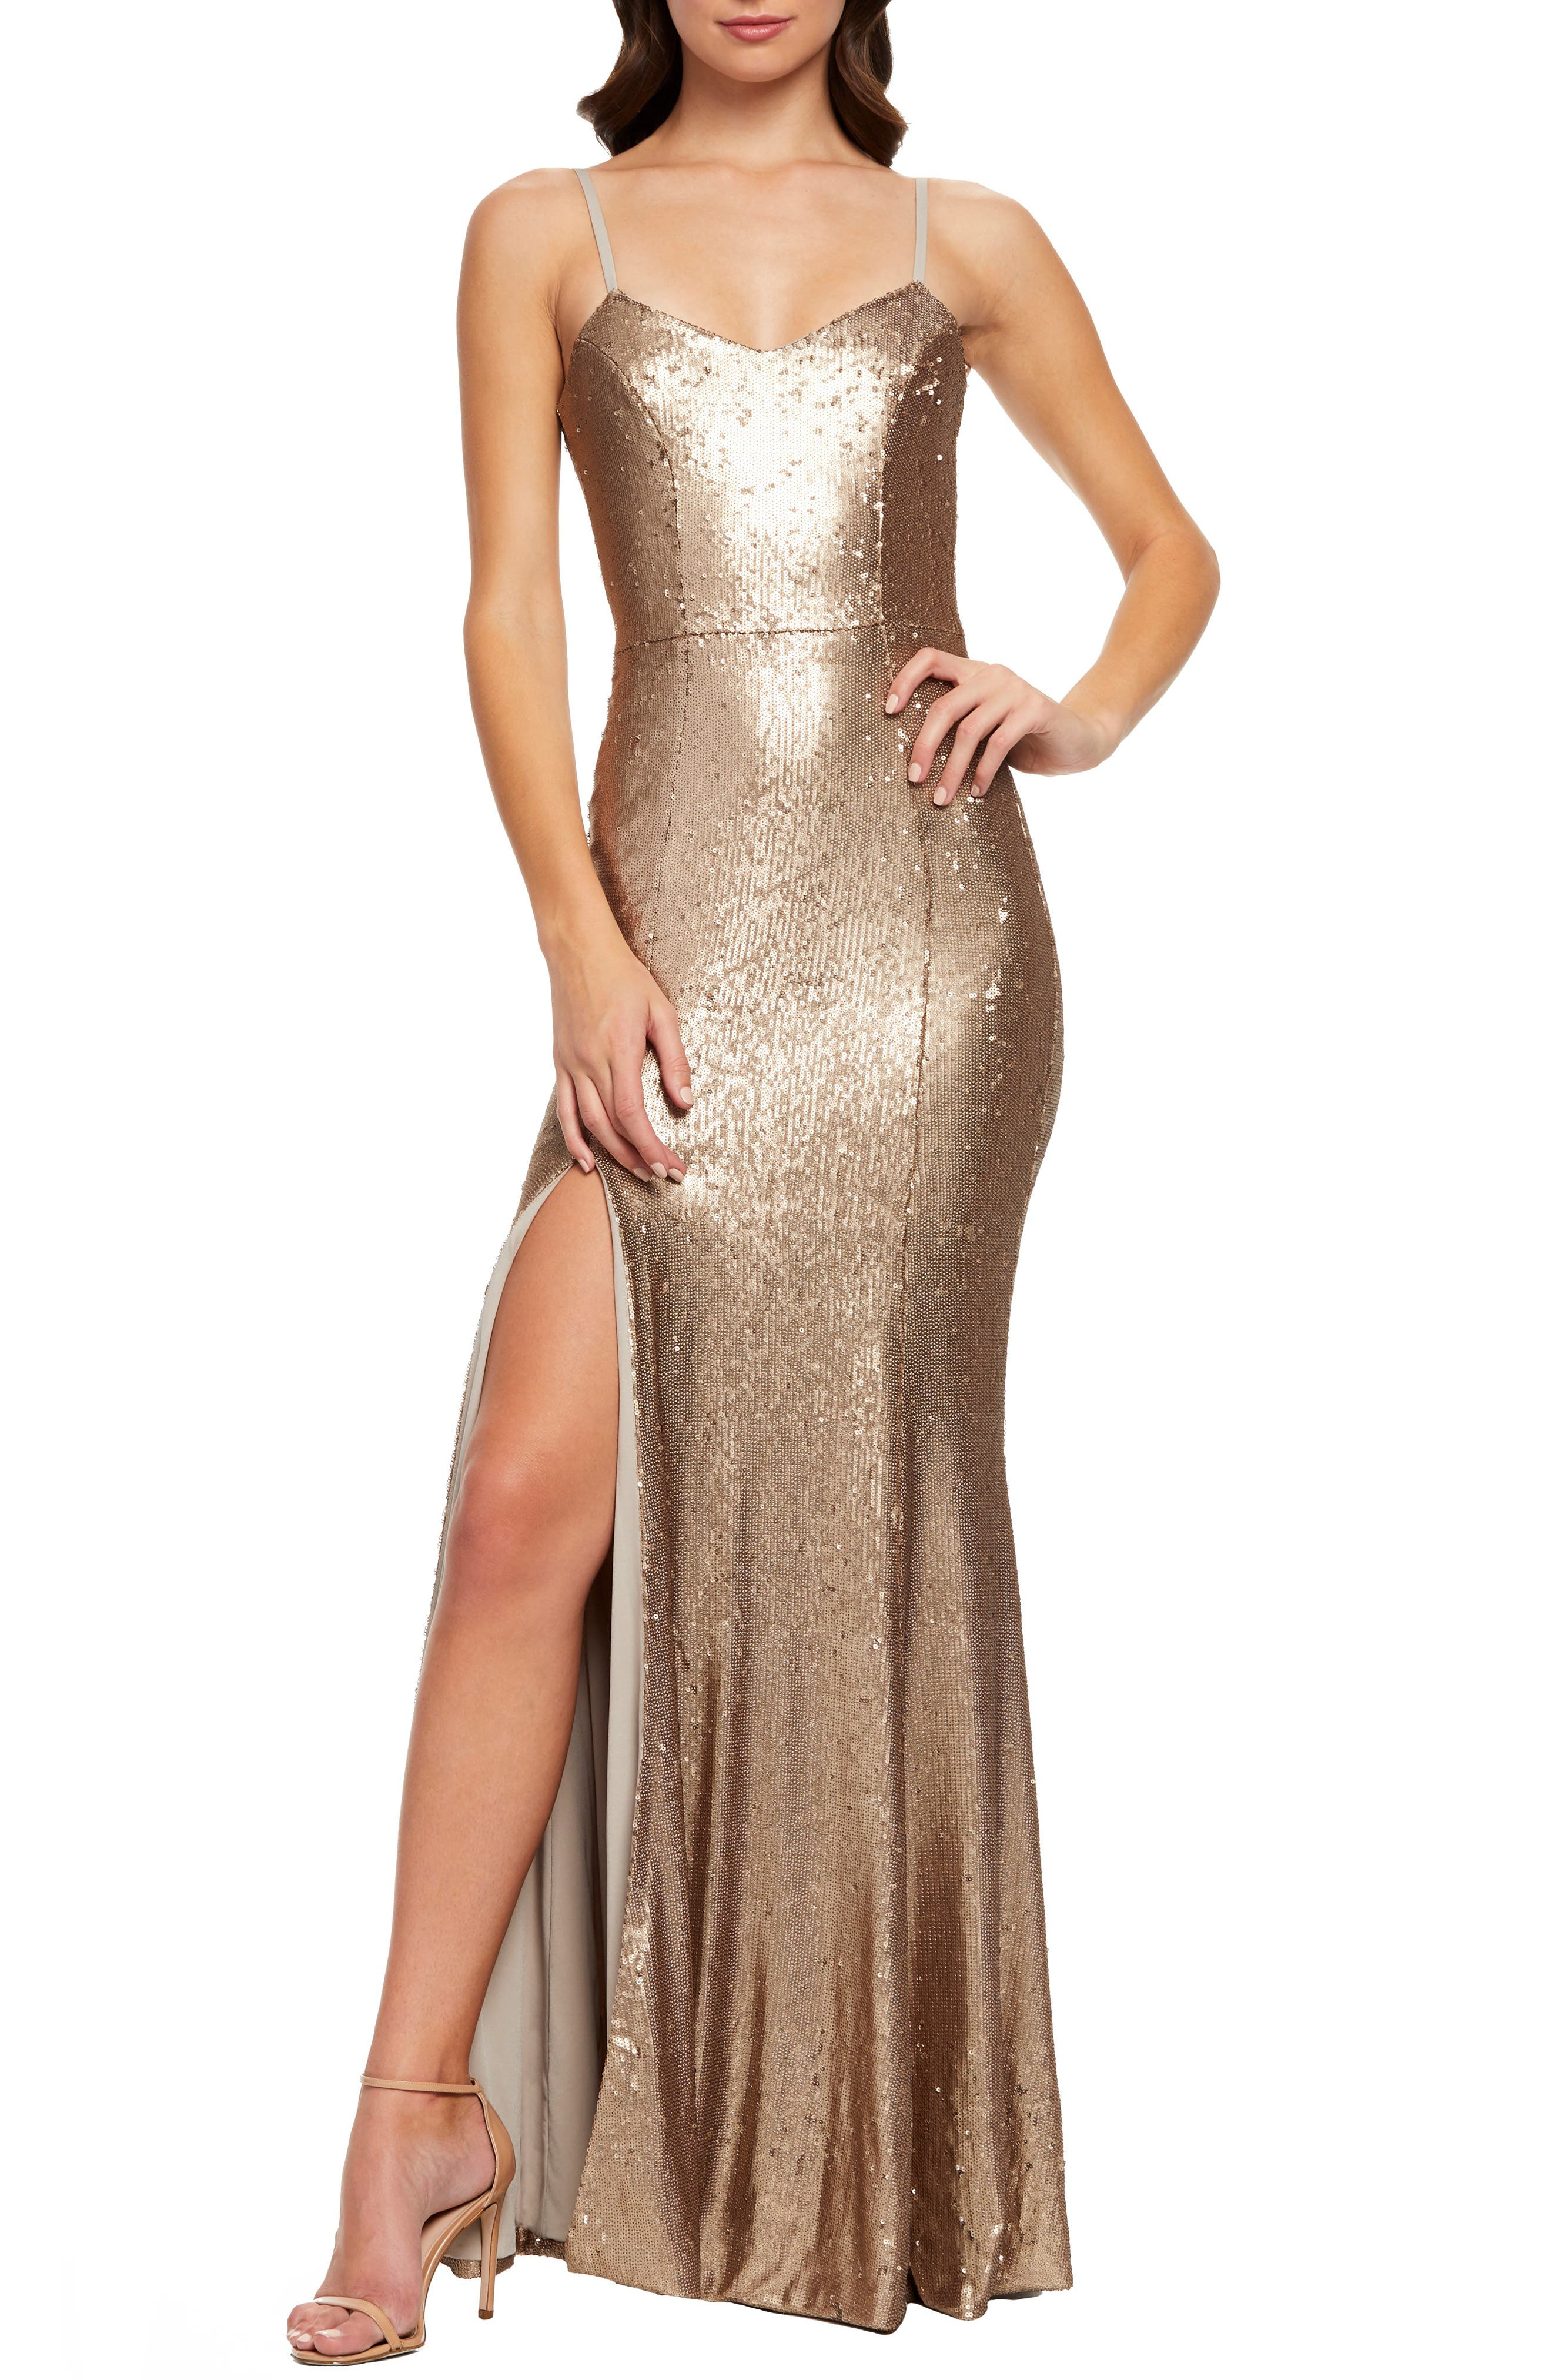 70s Prom, Formal, Evening, Party Dresses Womens Dress The Population Ingrid Sequin Evening Dress Size X-Large - Metallic $319.00 AT vintagedancer.com